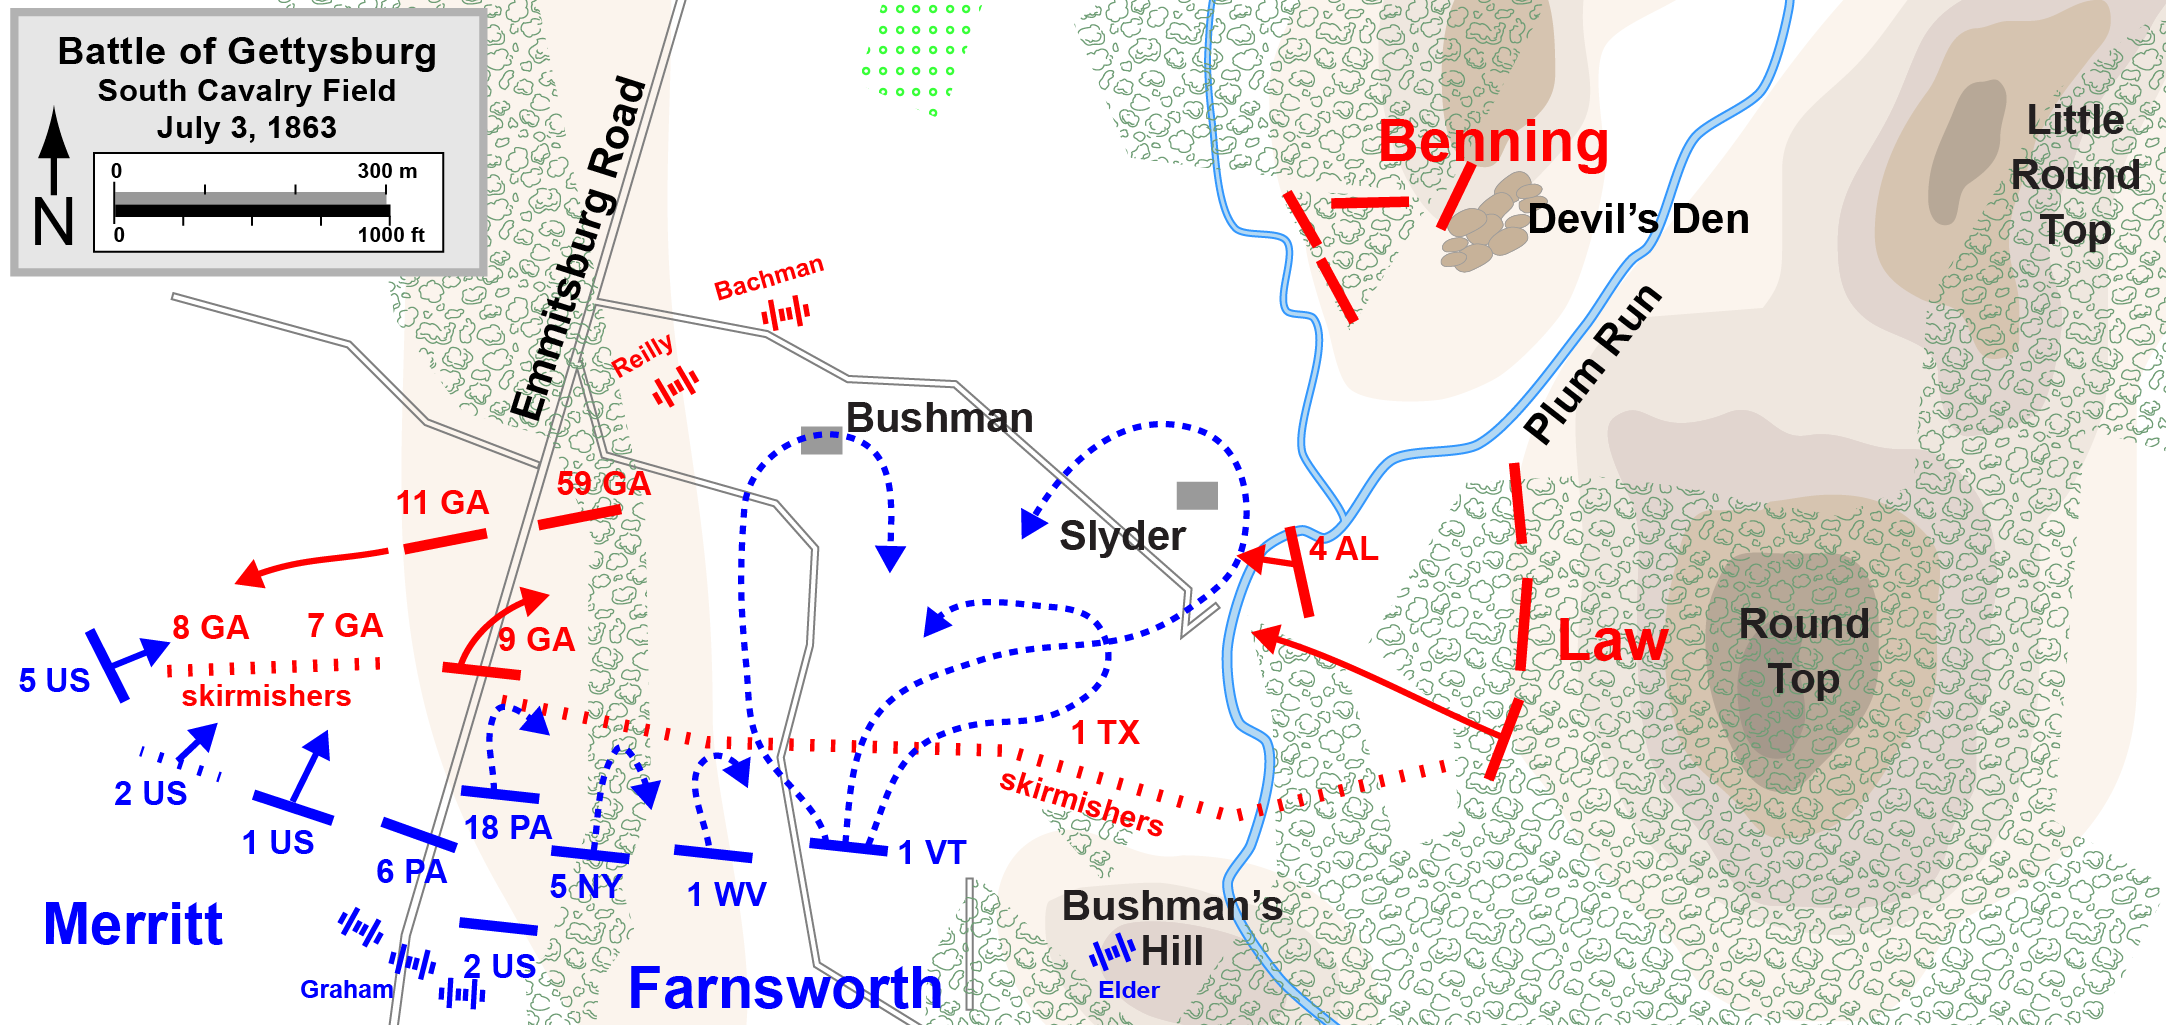 FileGettysburg South Cavalry Fieldpng Wikimedia Commons - Gettysburg on us map